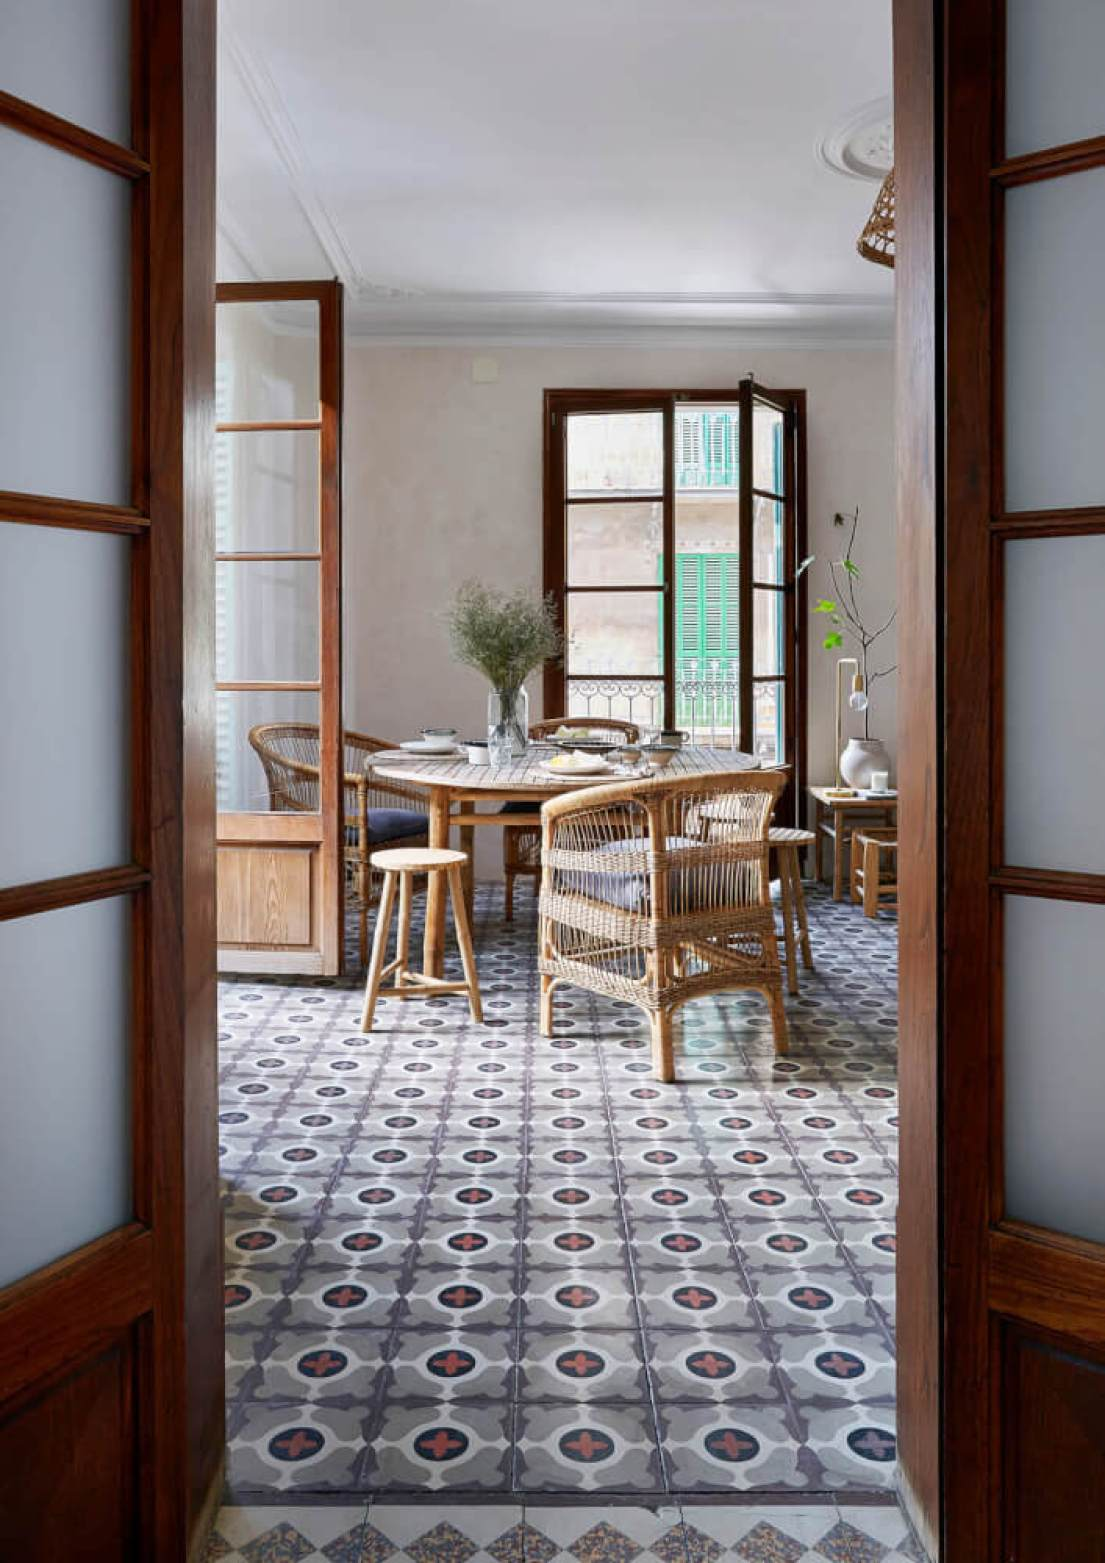 The traditional mallorcan floor tiles add colour and pattern to the space while the interior walls have been plastered